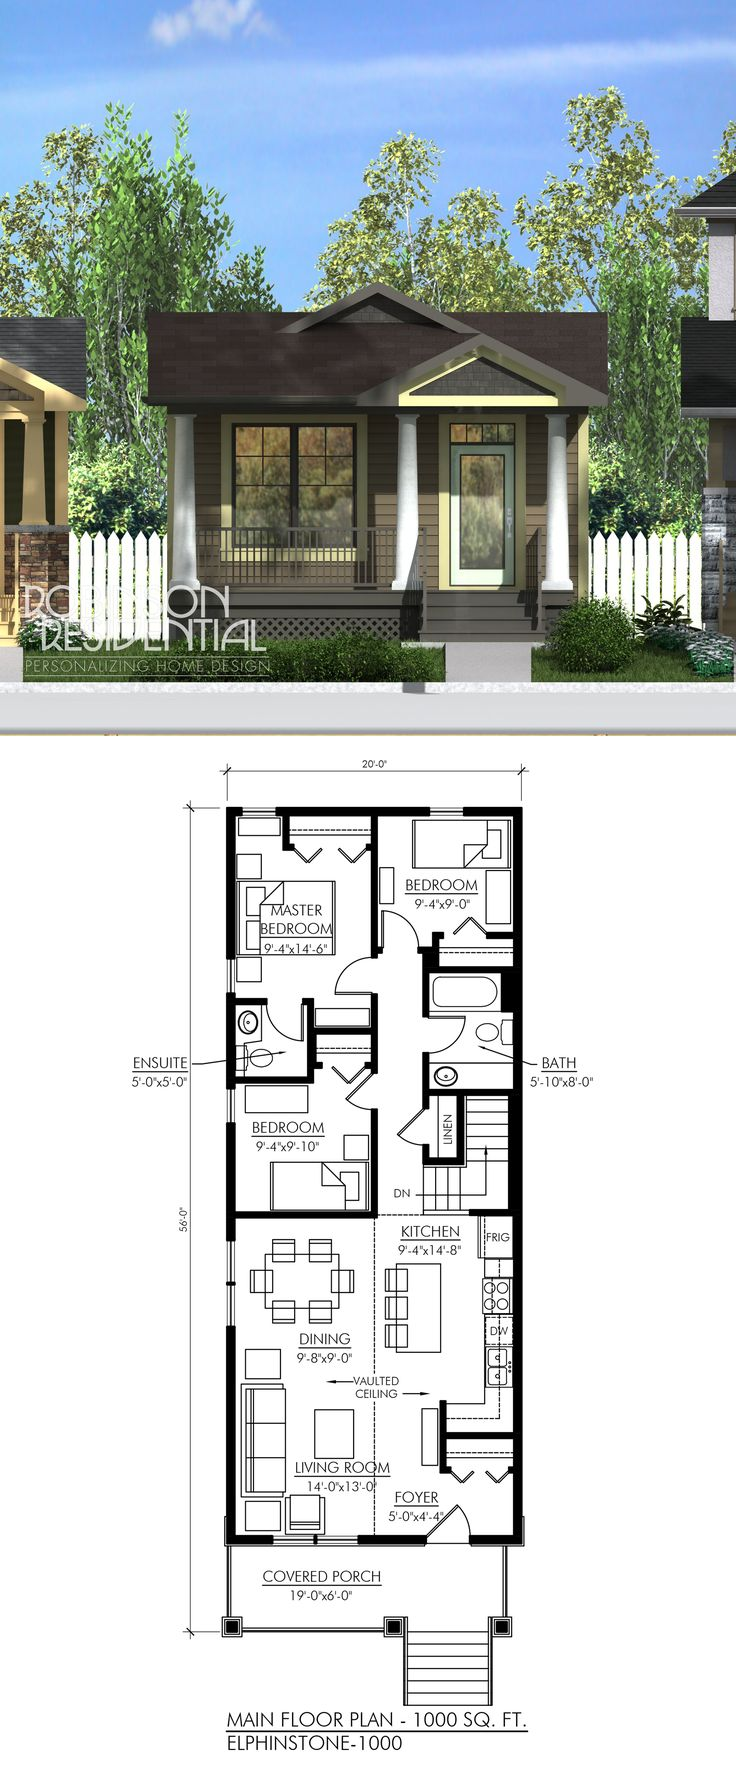 1000 sq. ft, 3 bedrooms, 1.5 bath. I like the front part of the house but I would remove the third bedroom and enlarge the master bath and closet.